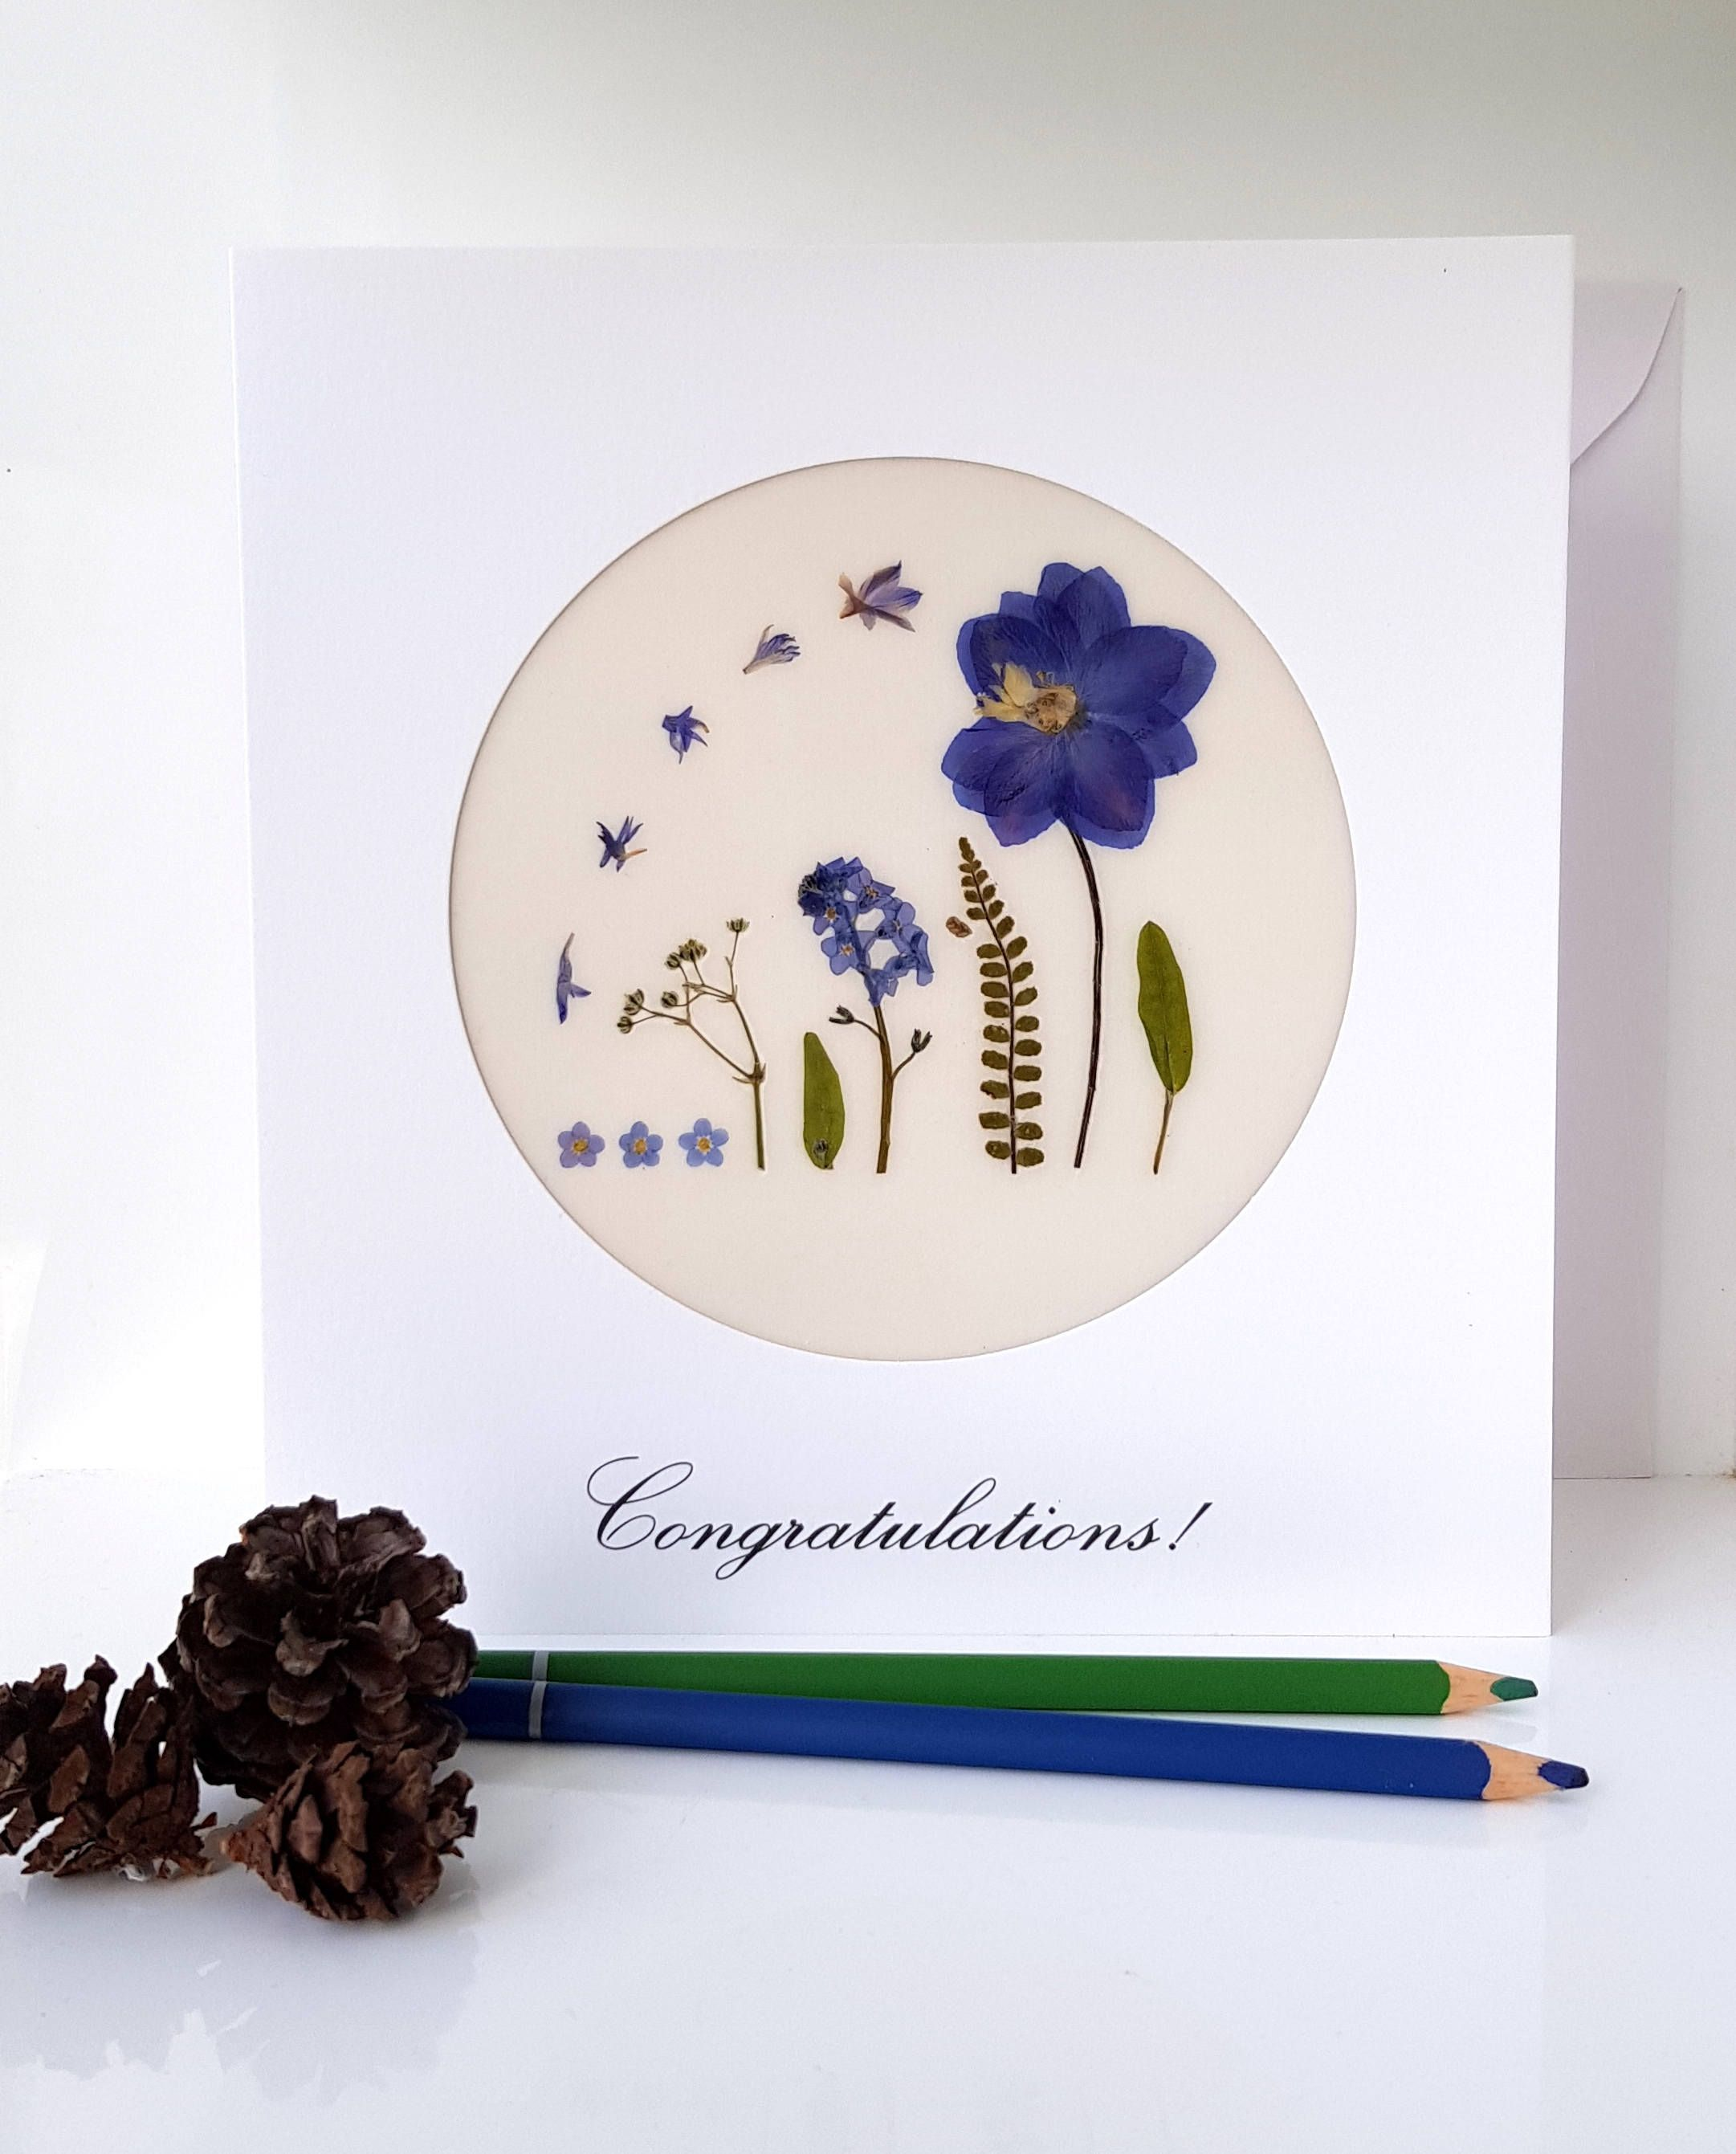 Congratulations wedding card handmade with pressed flowers wedding congratulations wedding card handmade with pressed flowers wedding gift just married newly wedded kristyandbryce Image collections